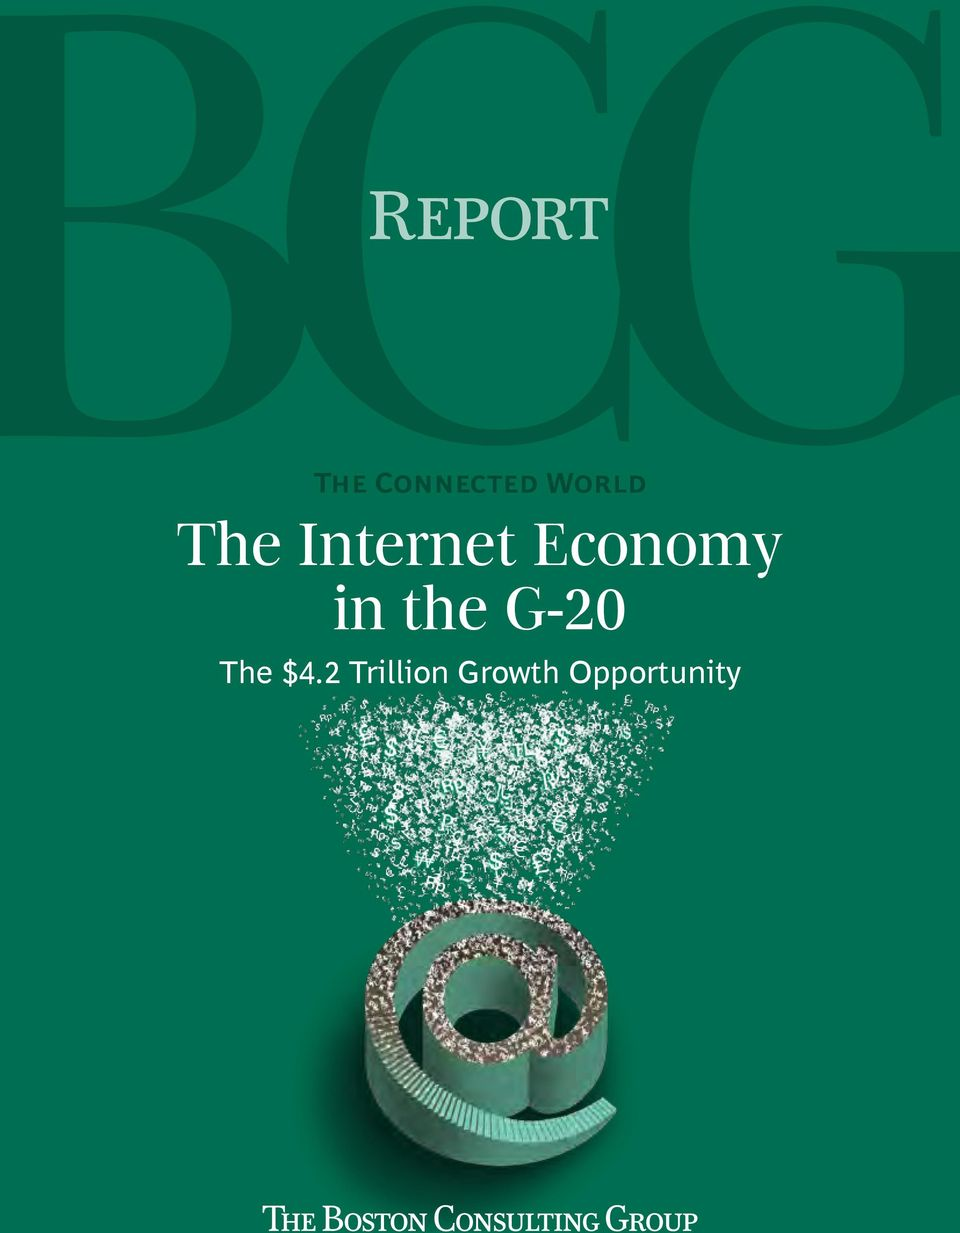 Economy in the G-20 The